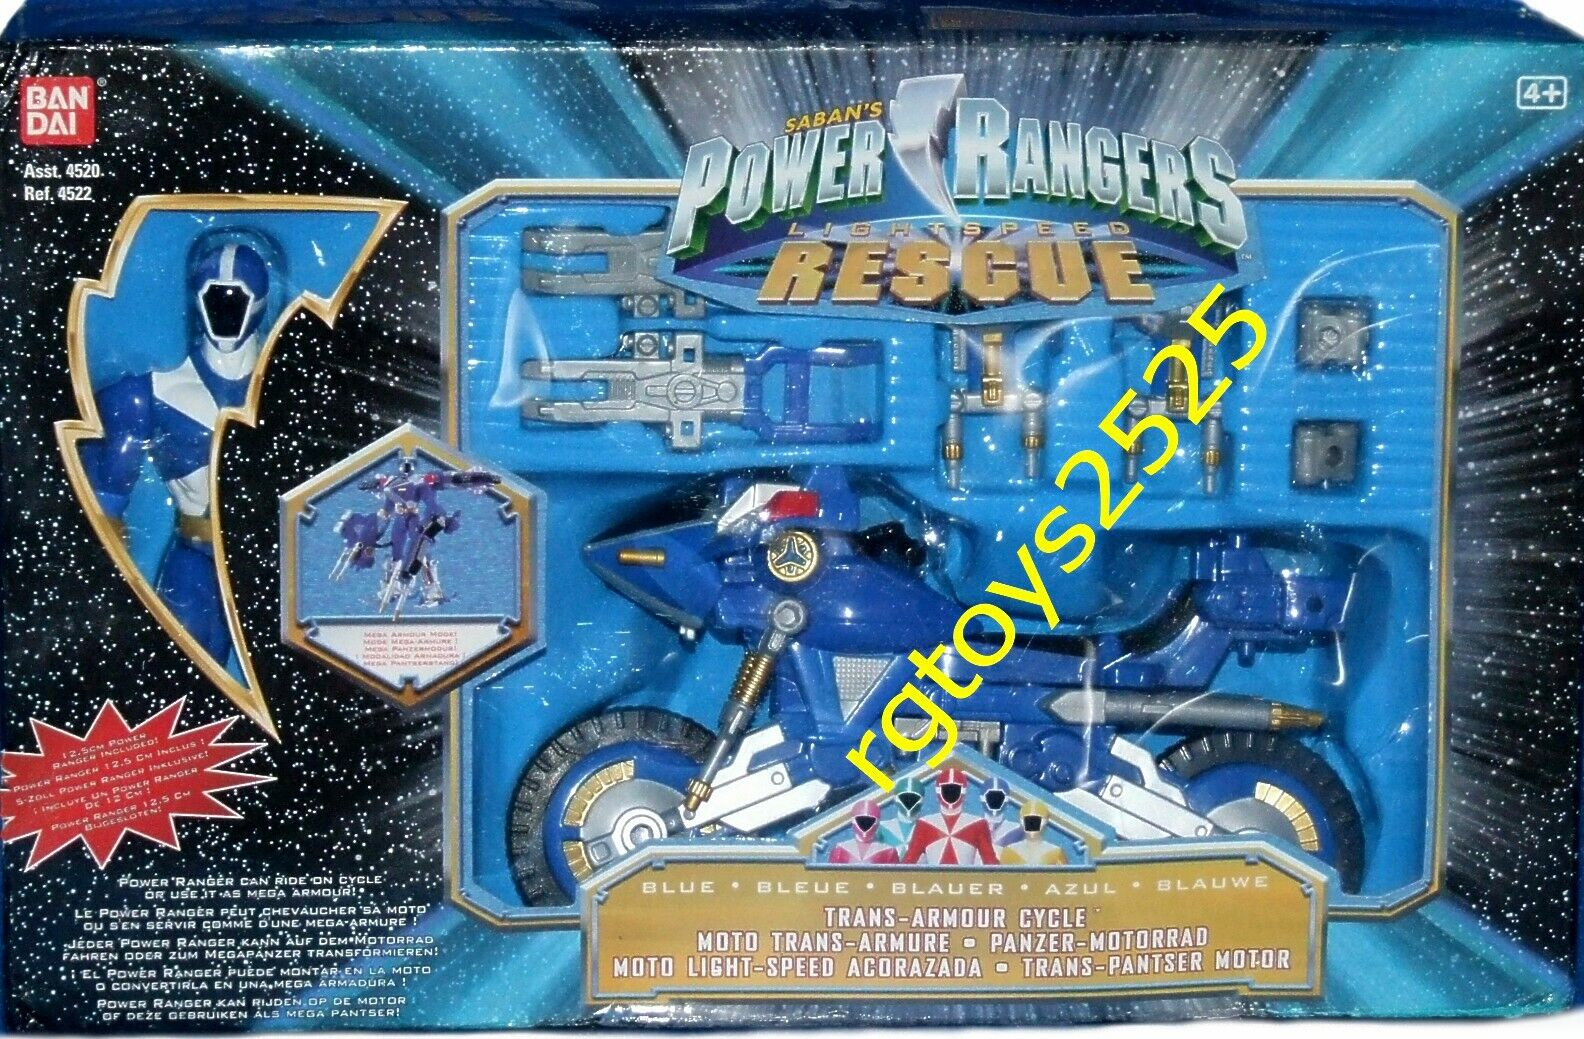 Power Rangers Lightspeed Rescue Trans Armor Cycle 5  Blau Ranger Factory Sealed